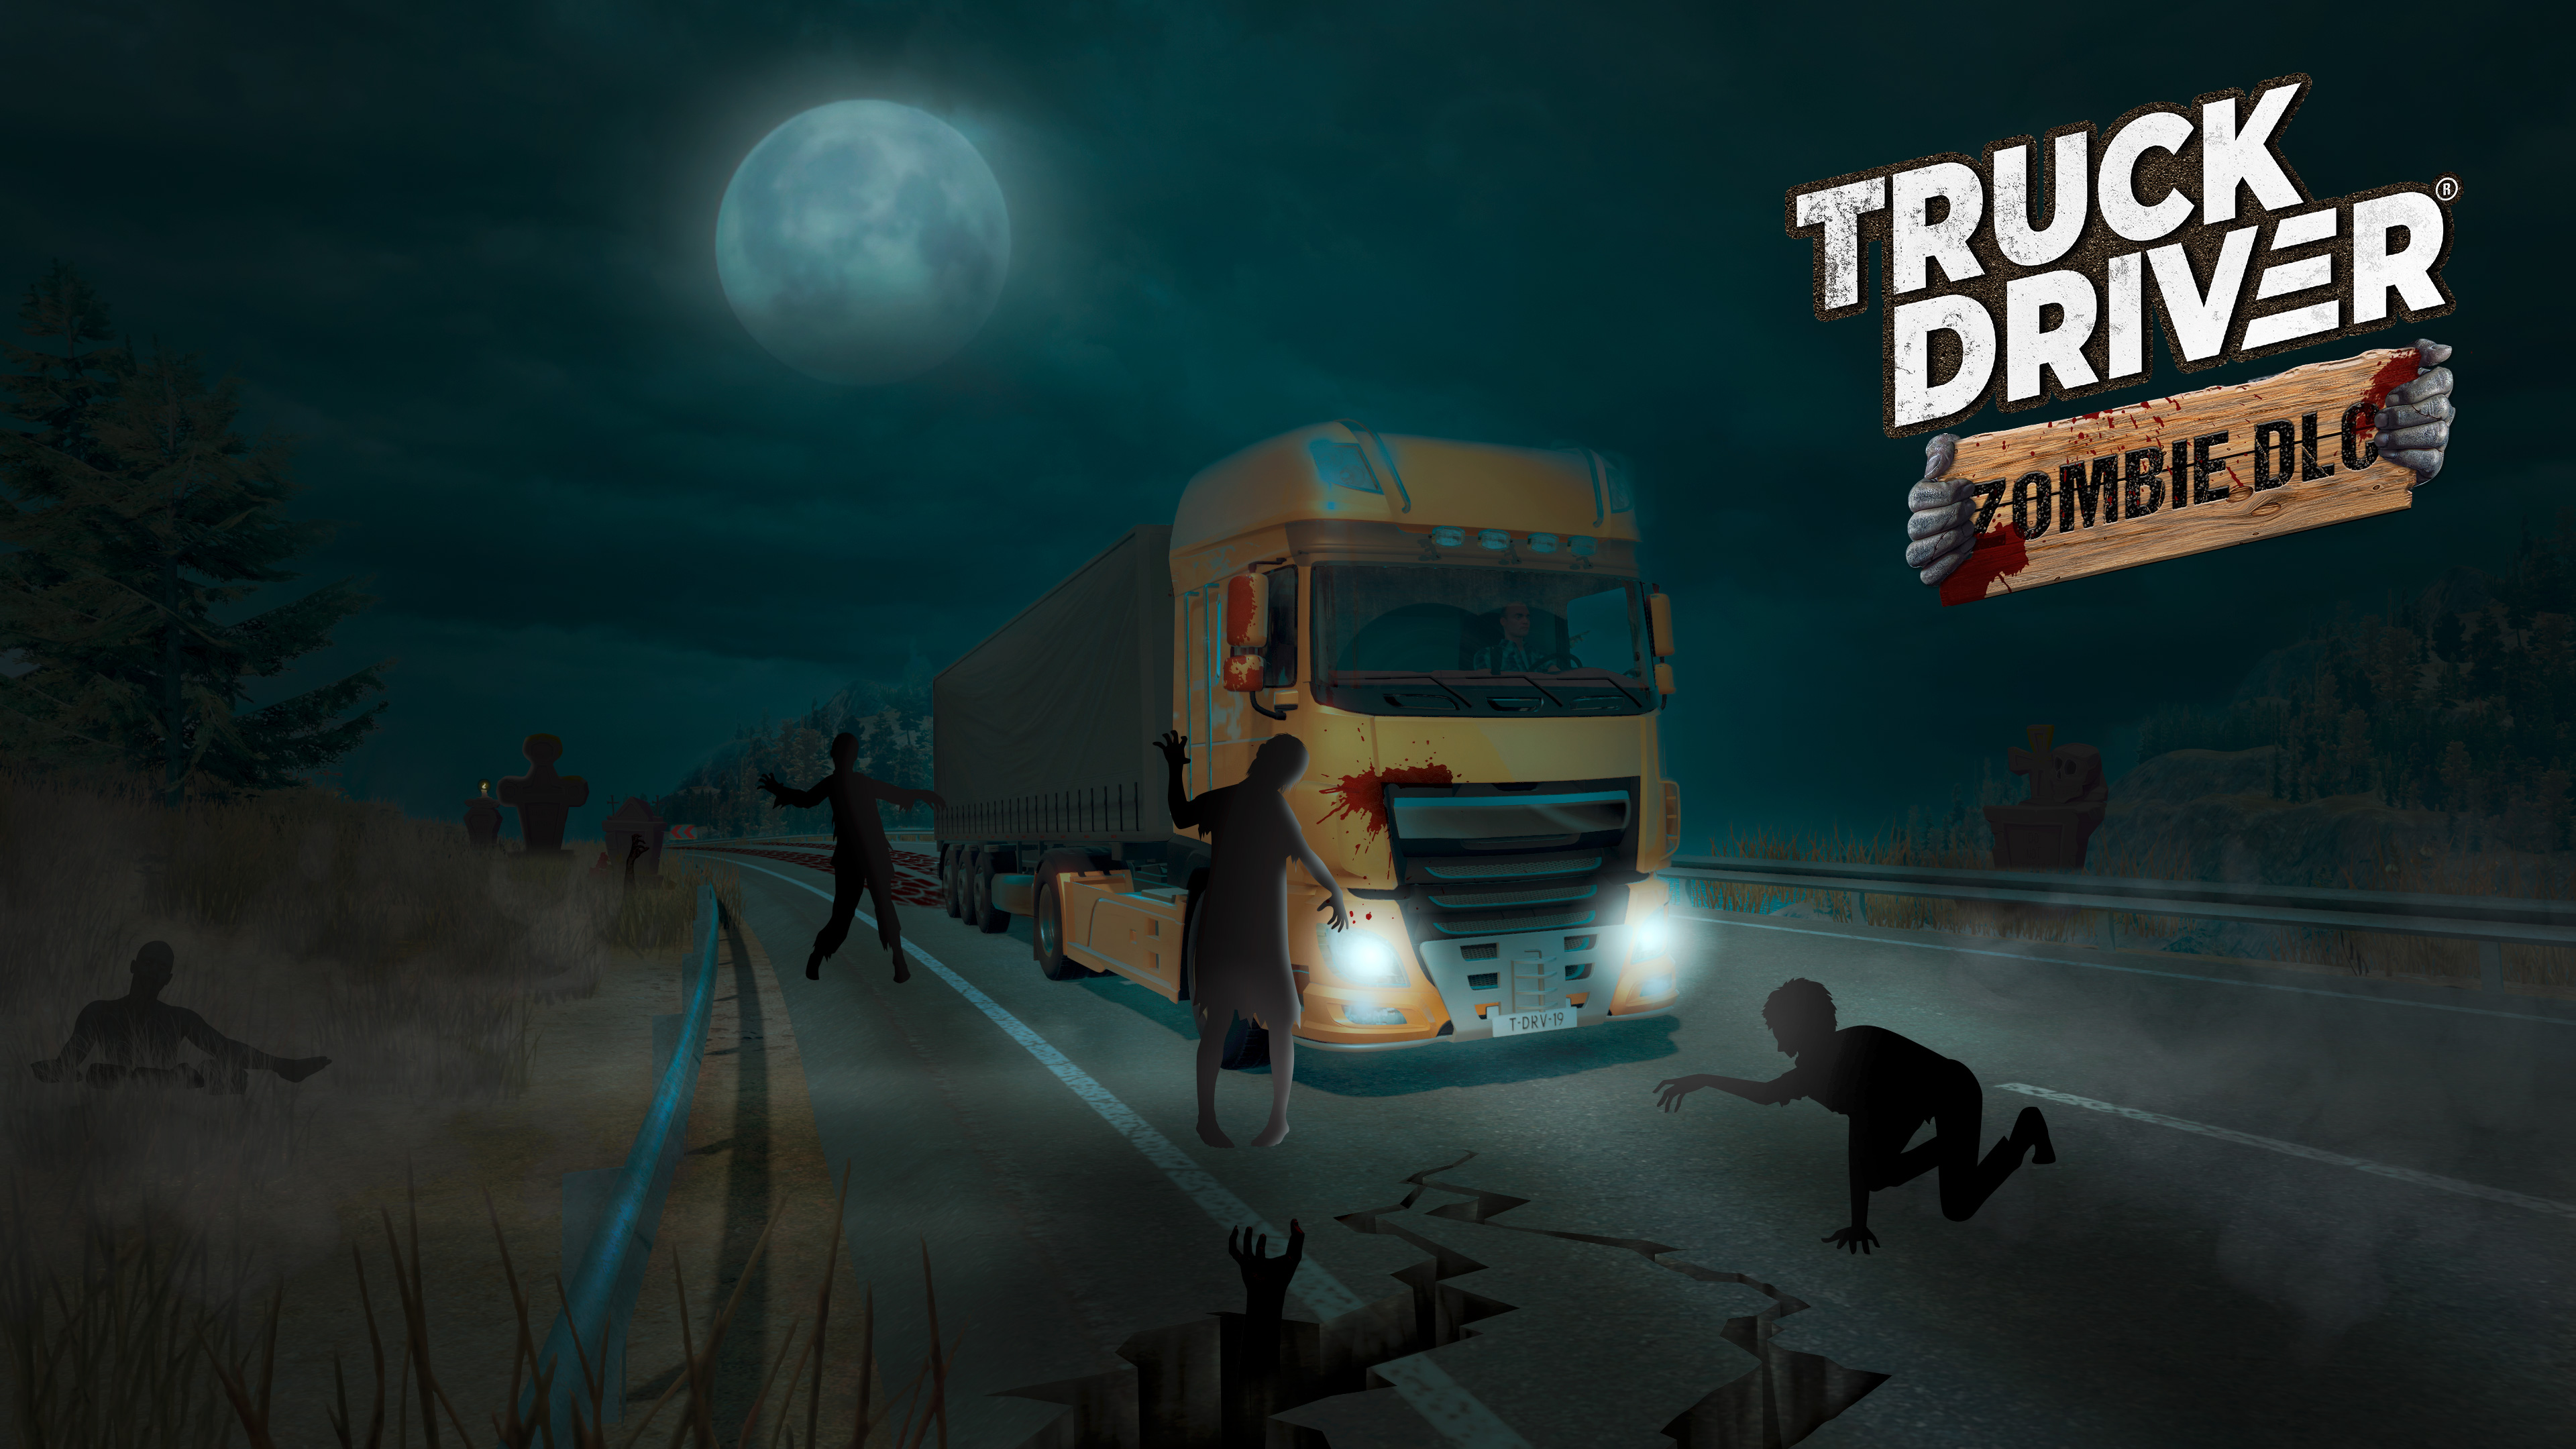 Truck Driver® Zombie DLC Announced